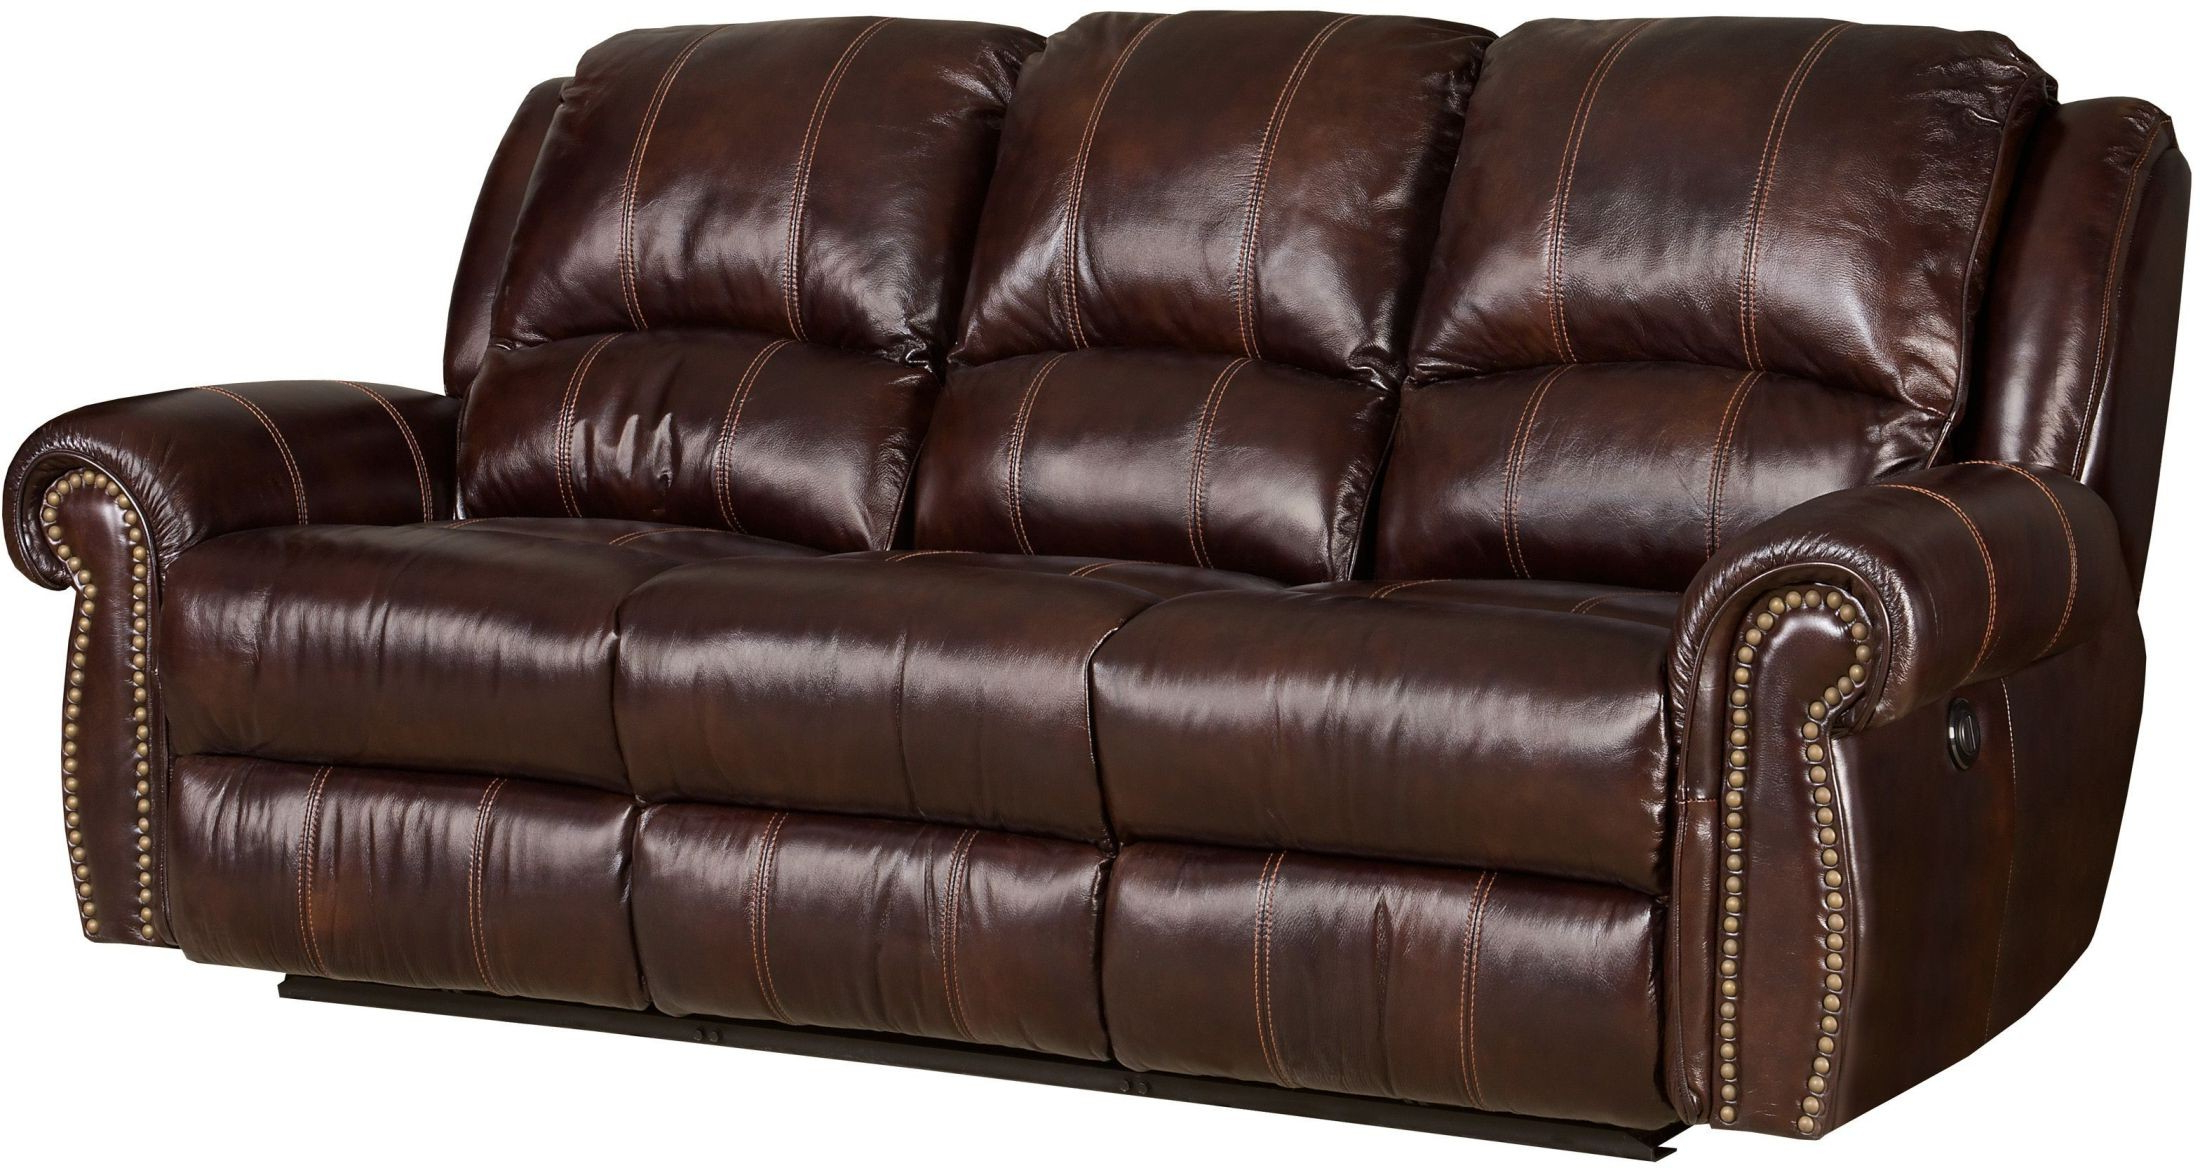 Newest Jackson Brown Power Leather Reclining Sofa From Hooker In Expedition Brown Power Reclining Sofas (View 6 of 20)